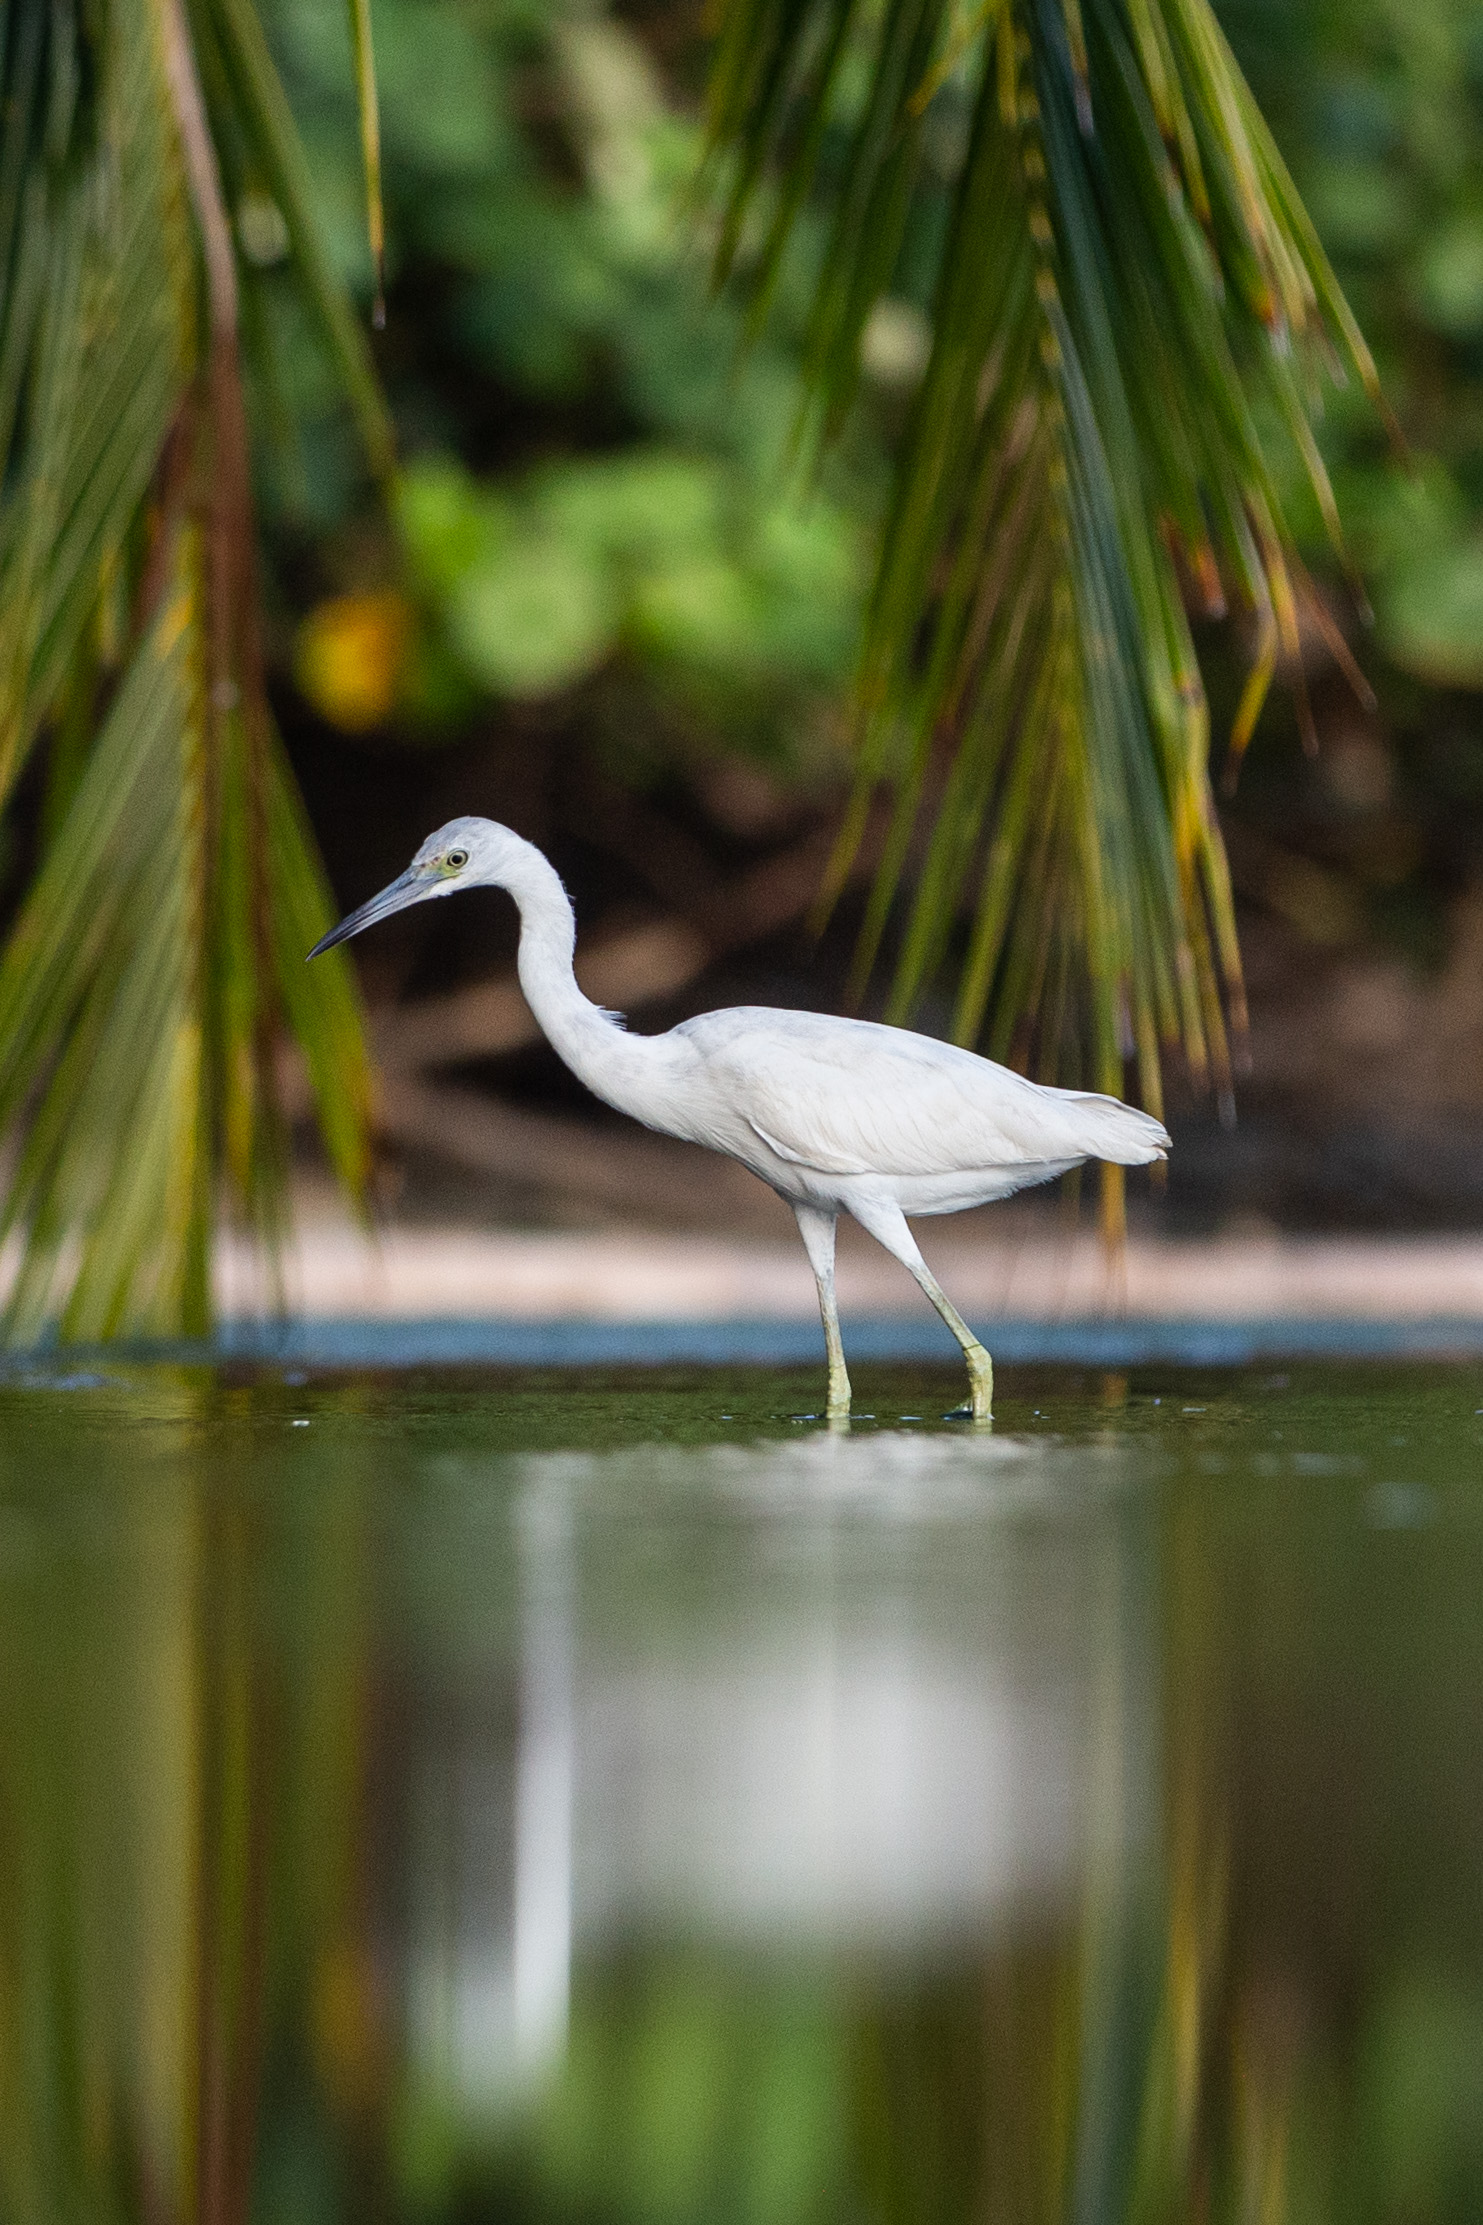 Snowy egret at Marino Bellena National Park